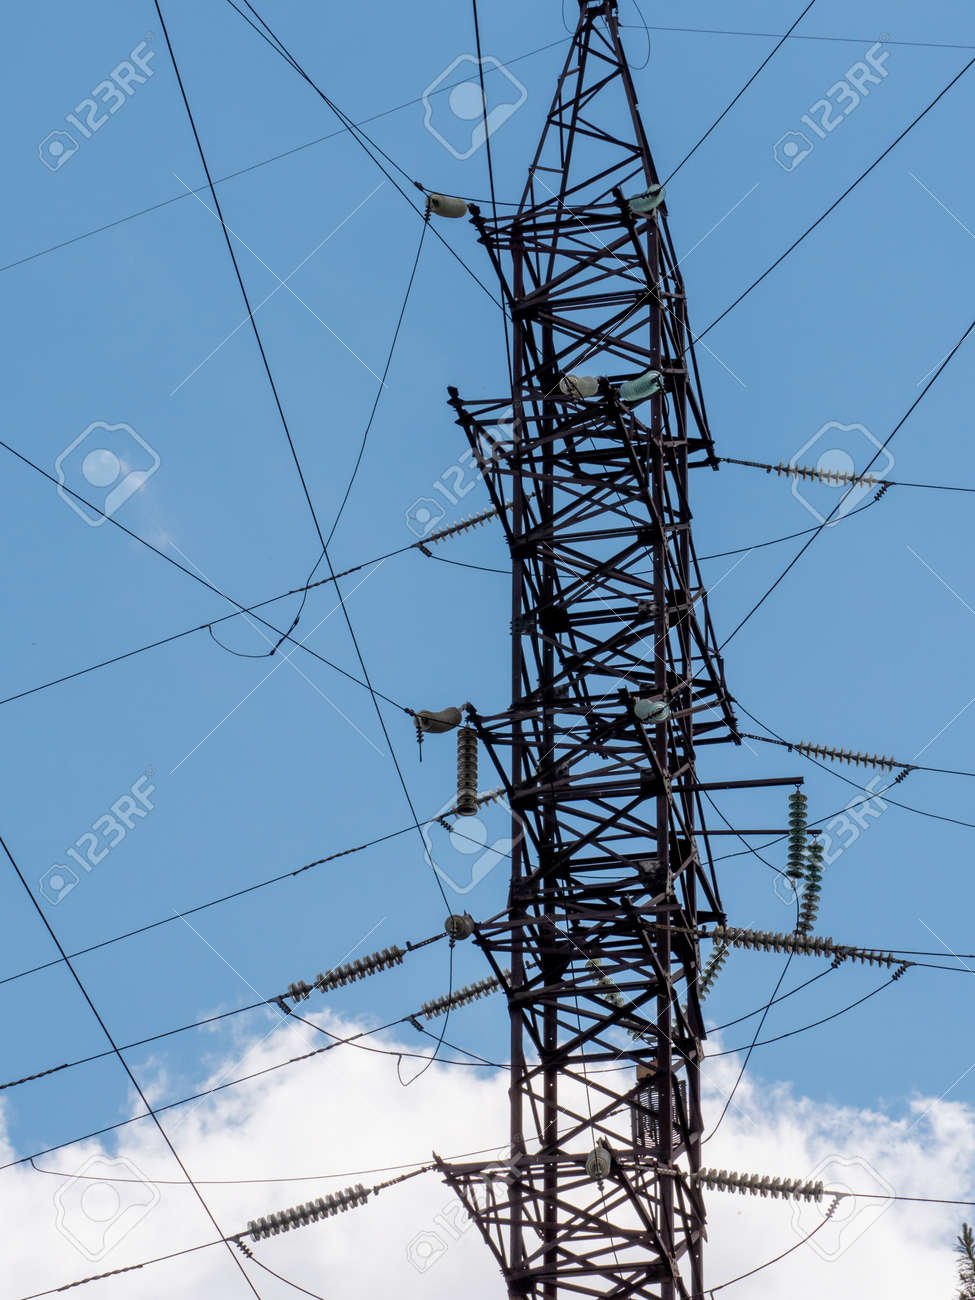 High voltage tower with wires - 149743460